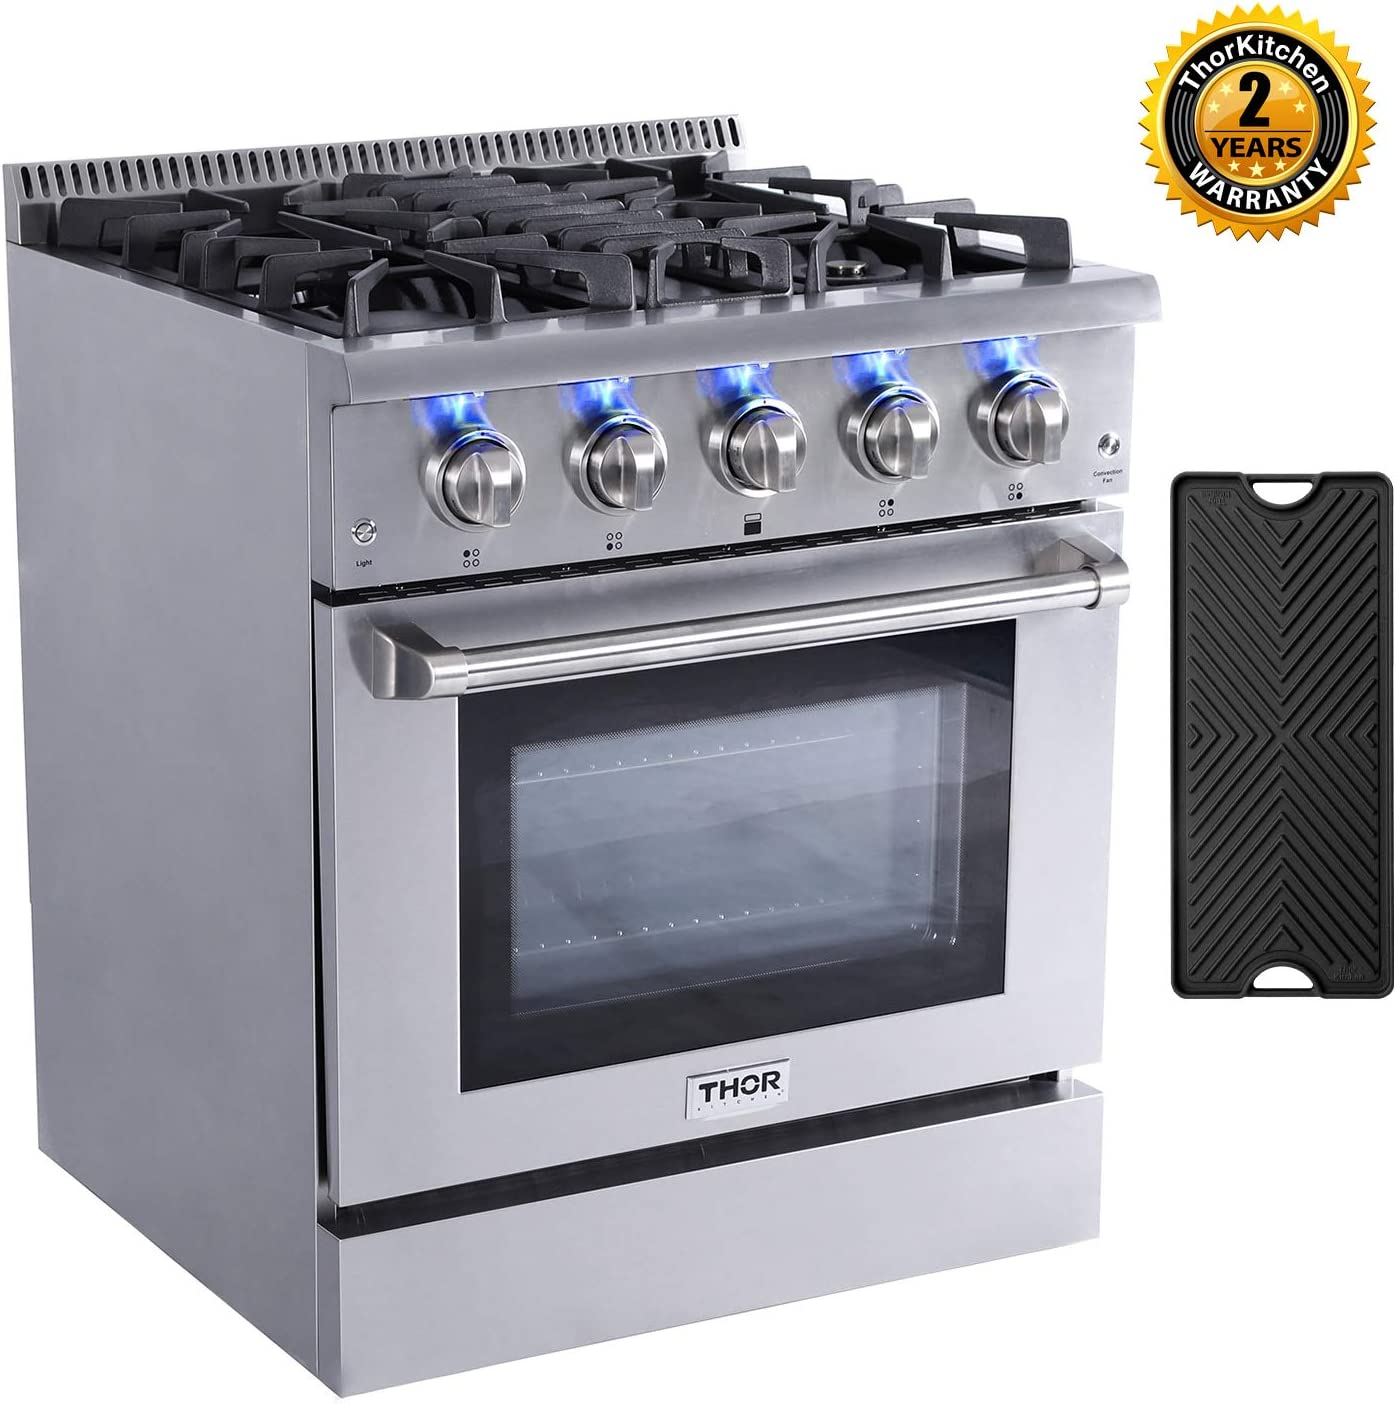 Thor Kitchen 30'' Gas Range Pro-Style Freestanding Professional Style with 4.2 cu.ft Convection Oven in Stainless Steel, 4 Burners, Cast-Iron Reversible Griddle, HRG3080U